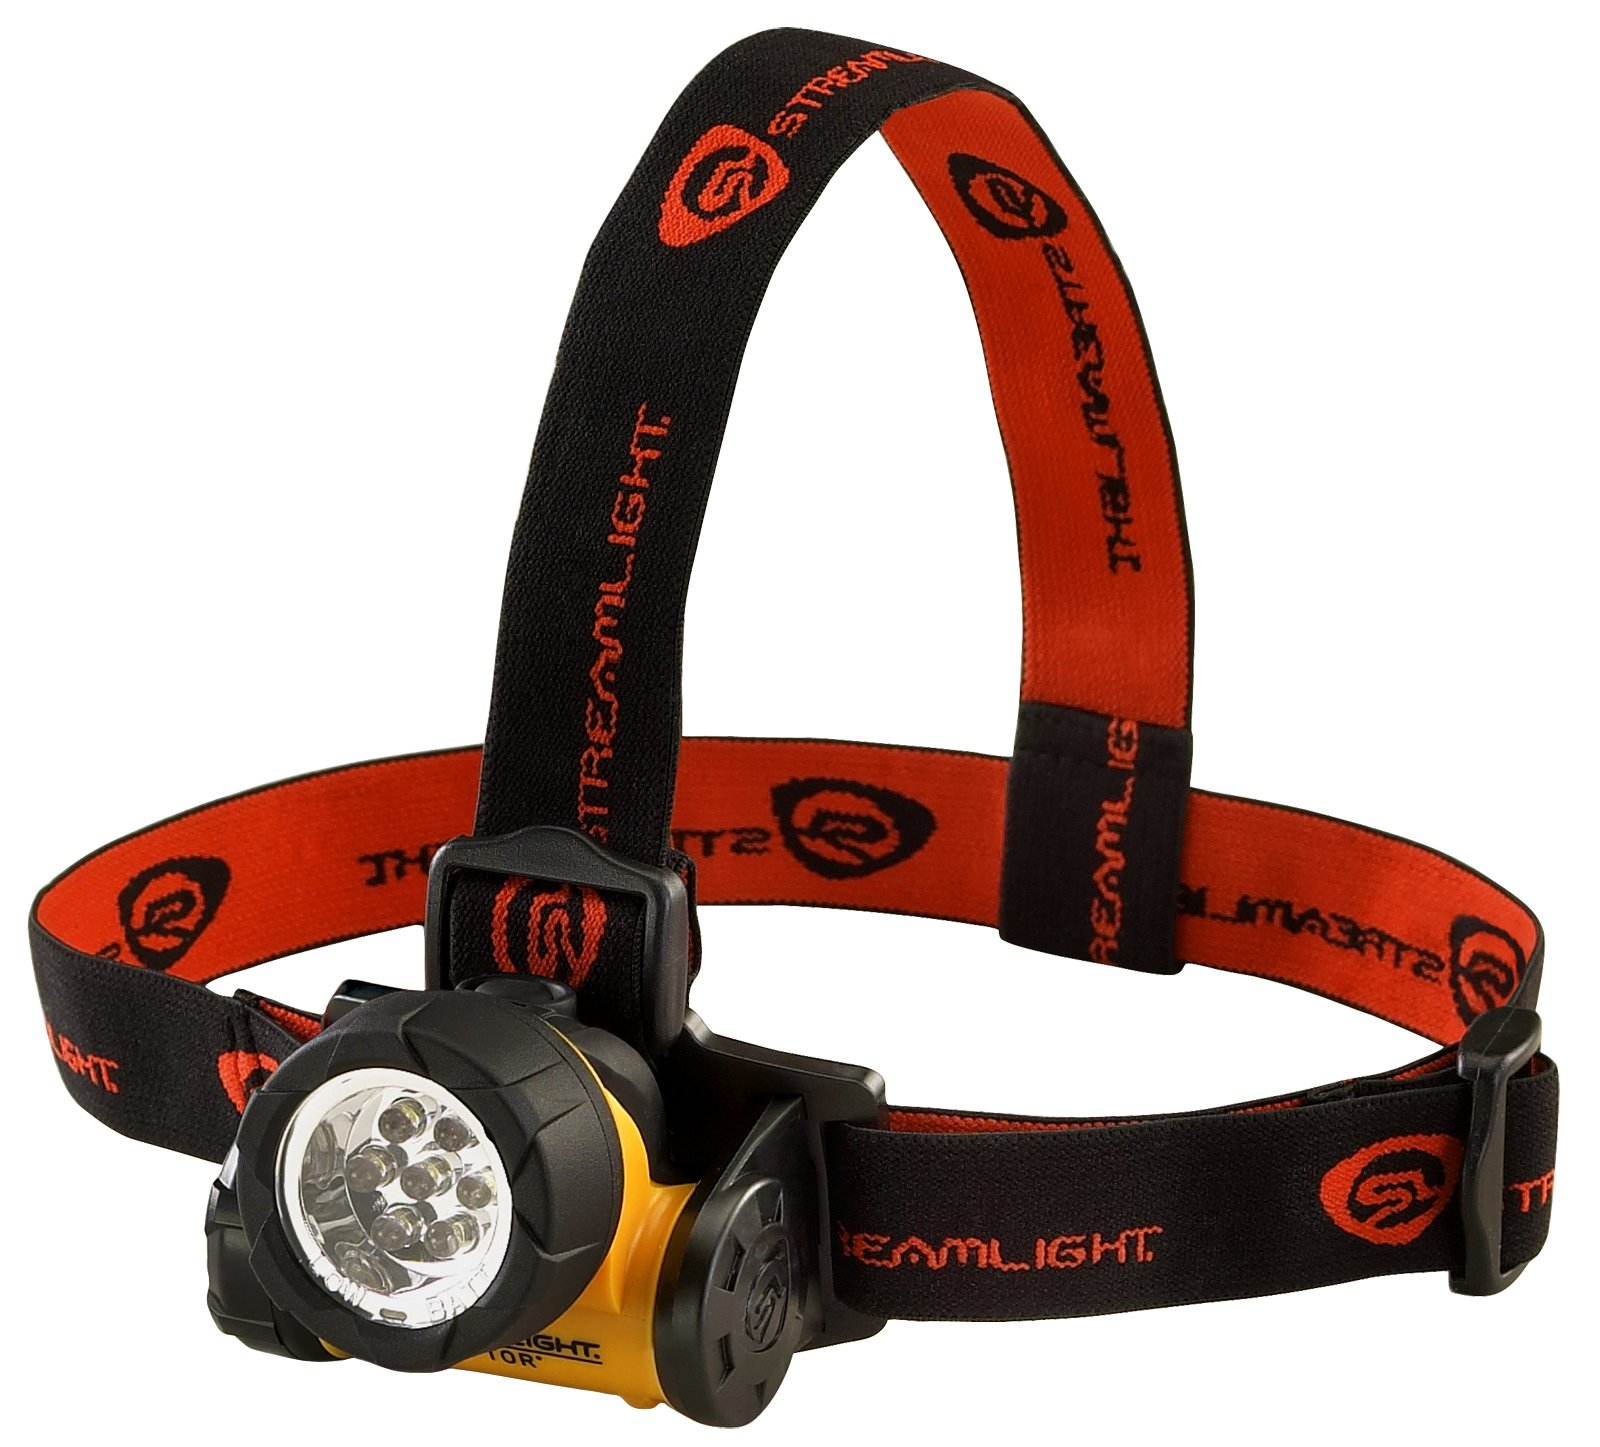 Streamlight 61052 Septor Headlight with Elastic & Rubber Strap, Yellow